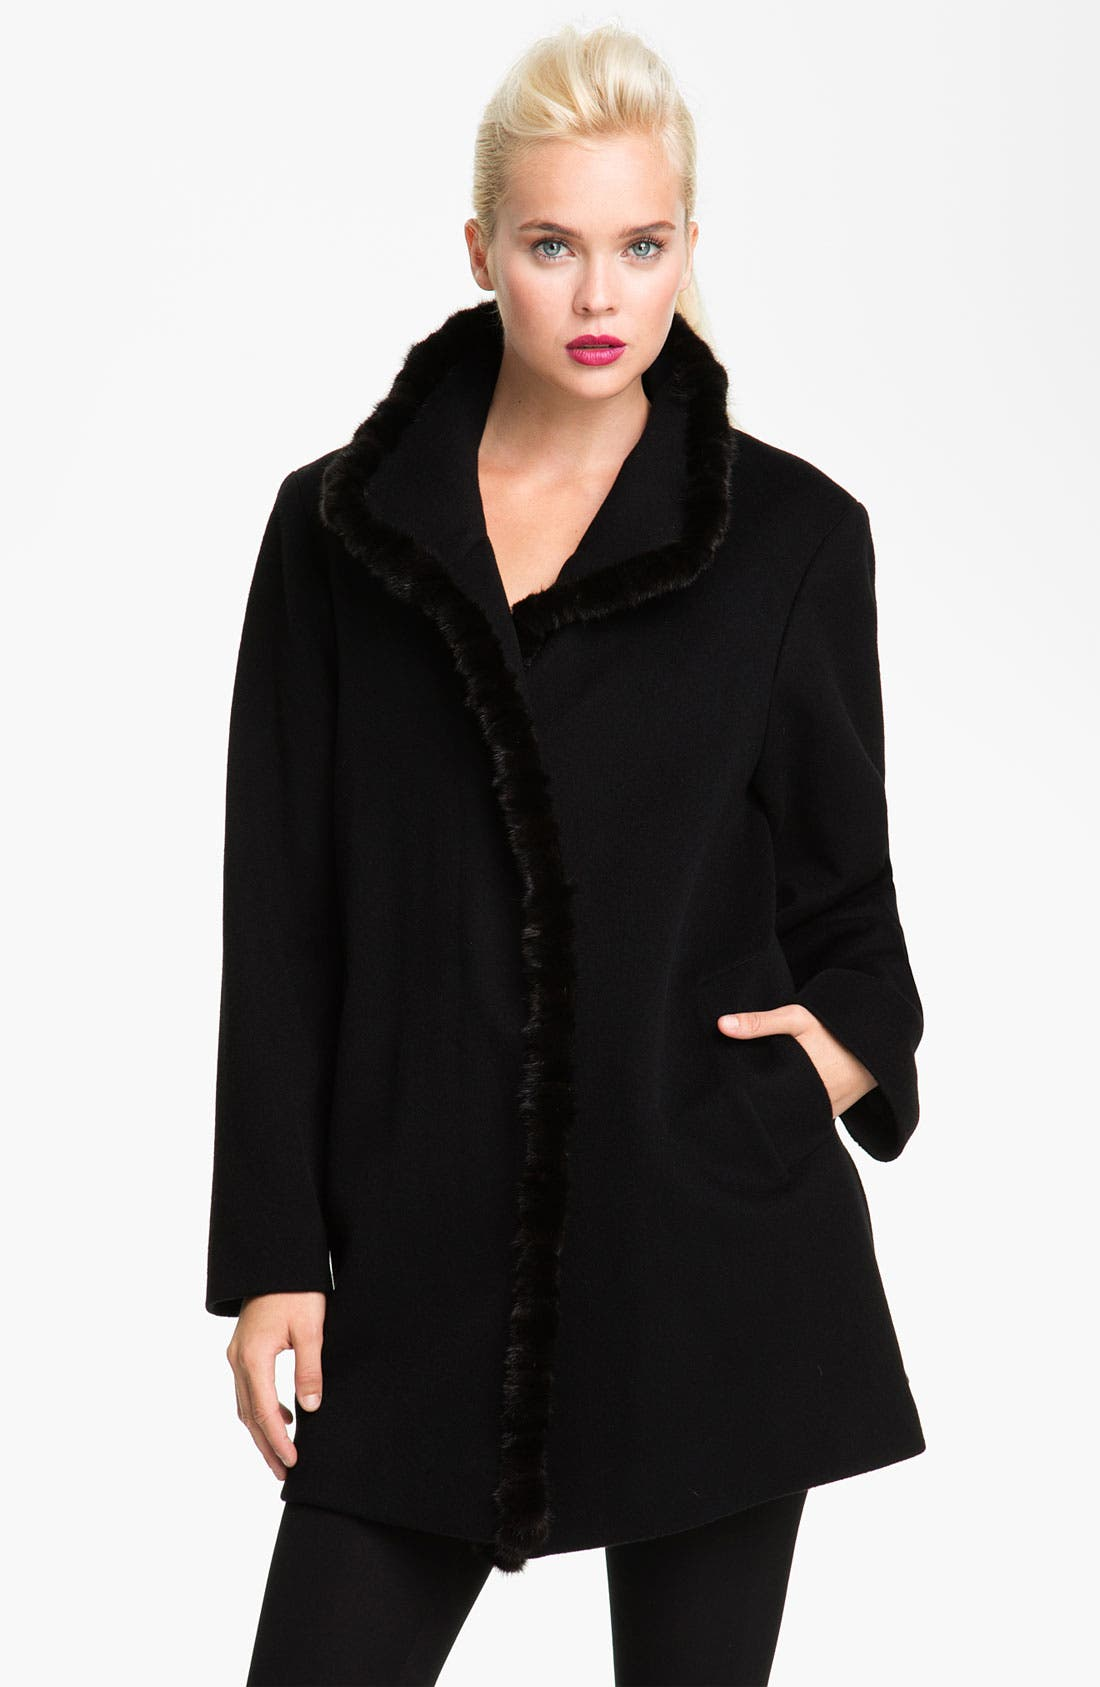 Alternate Image 1 Selected - Fleurette Genuine Mink Fur Trim Walking Coat (Petite)